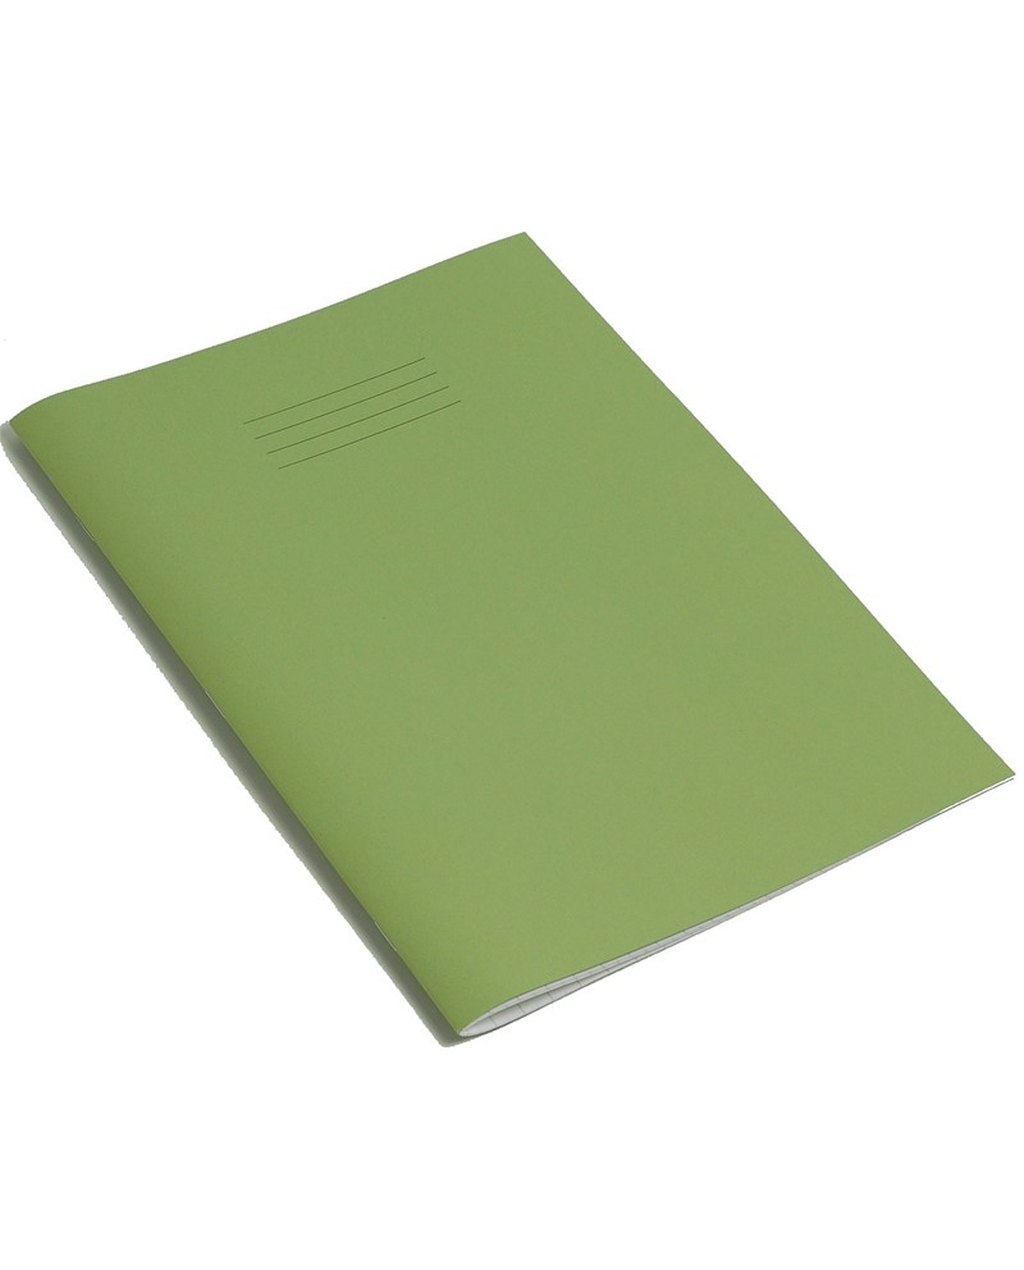 Exercise Book A4+ size (330 x 250mm) Light Green Cover 8mm Ruled 40 Pages